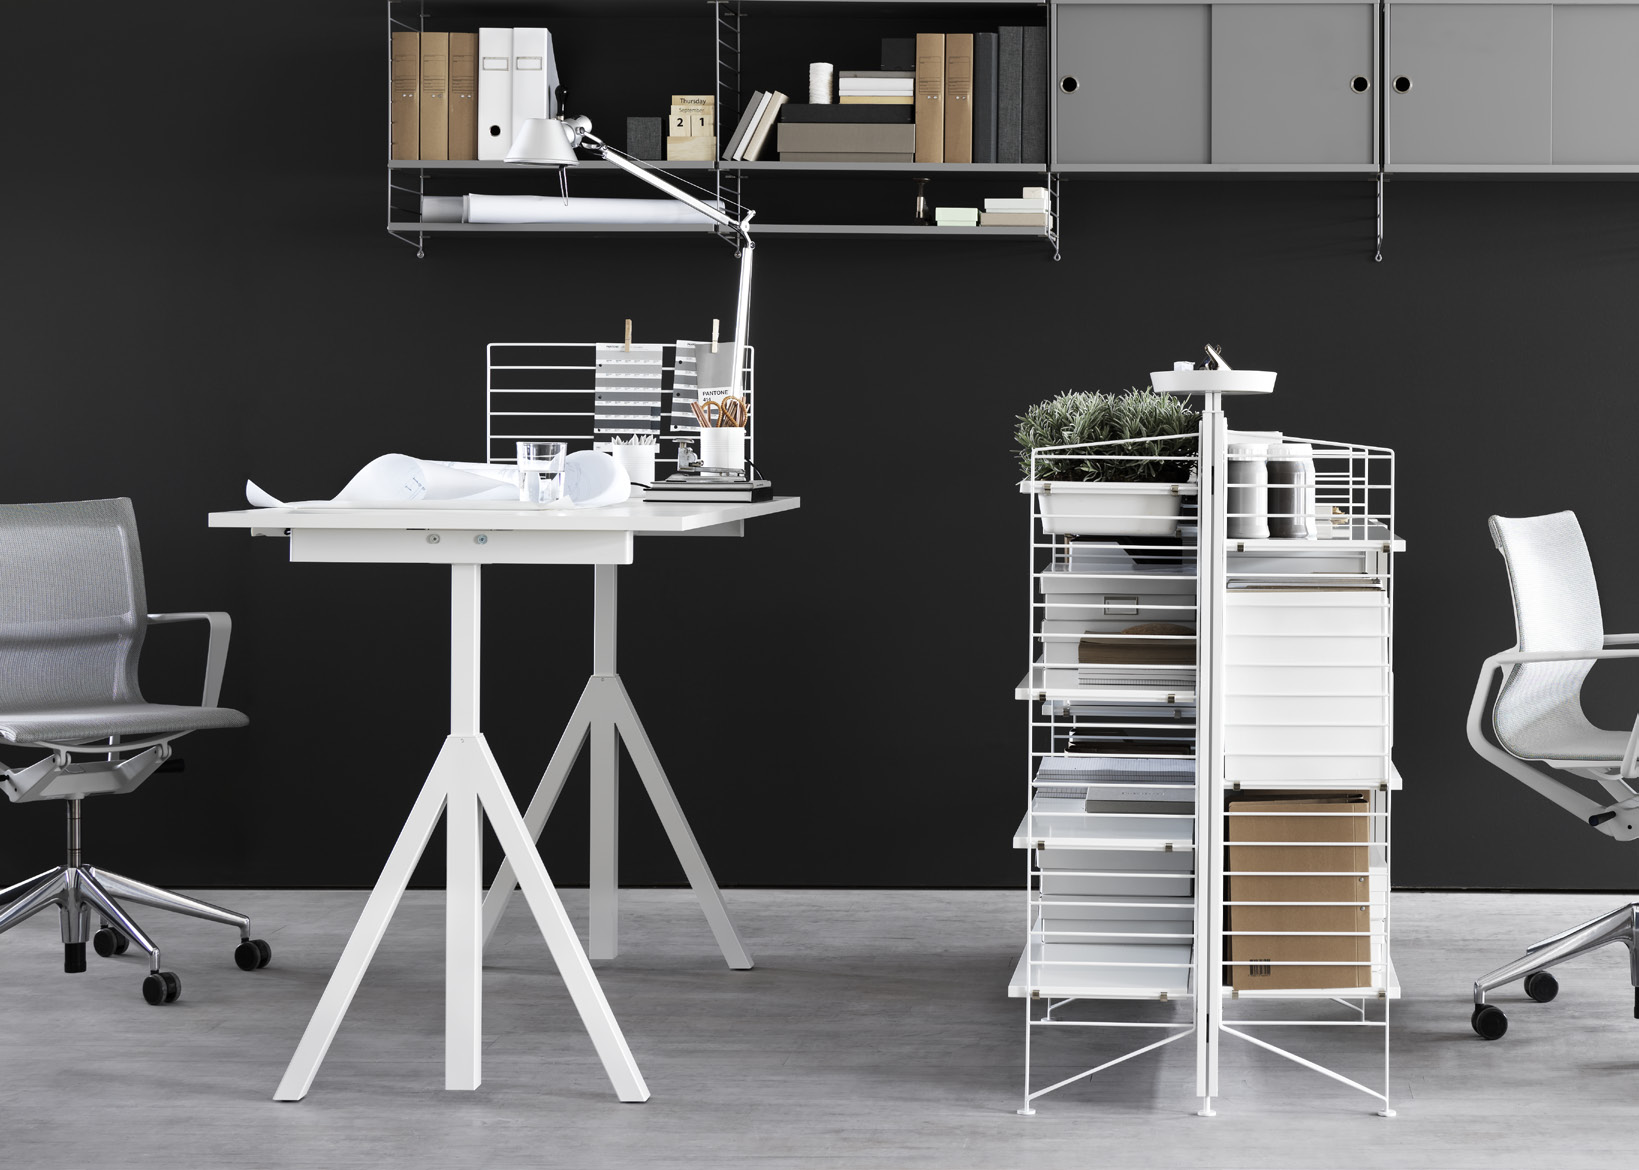 height adjustable desk people are not built to sit still. therefore, we work better if we can vary our posture. by changing position from sitting to standing, one can concentrate more and feel better.